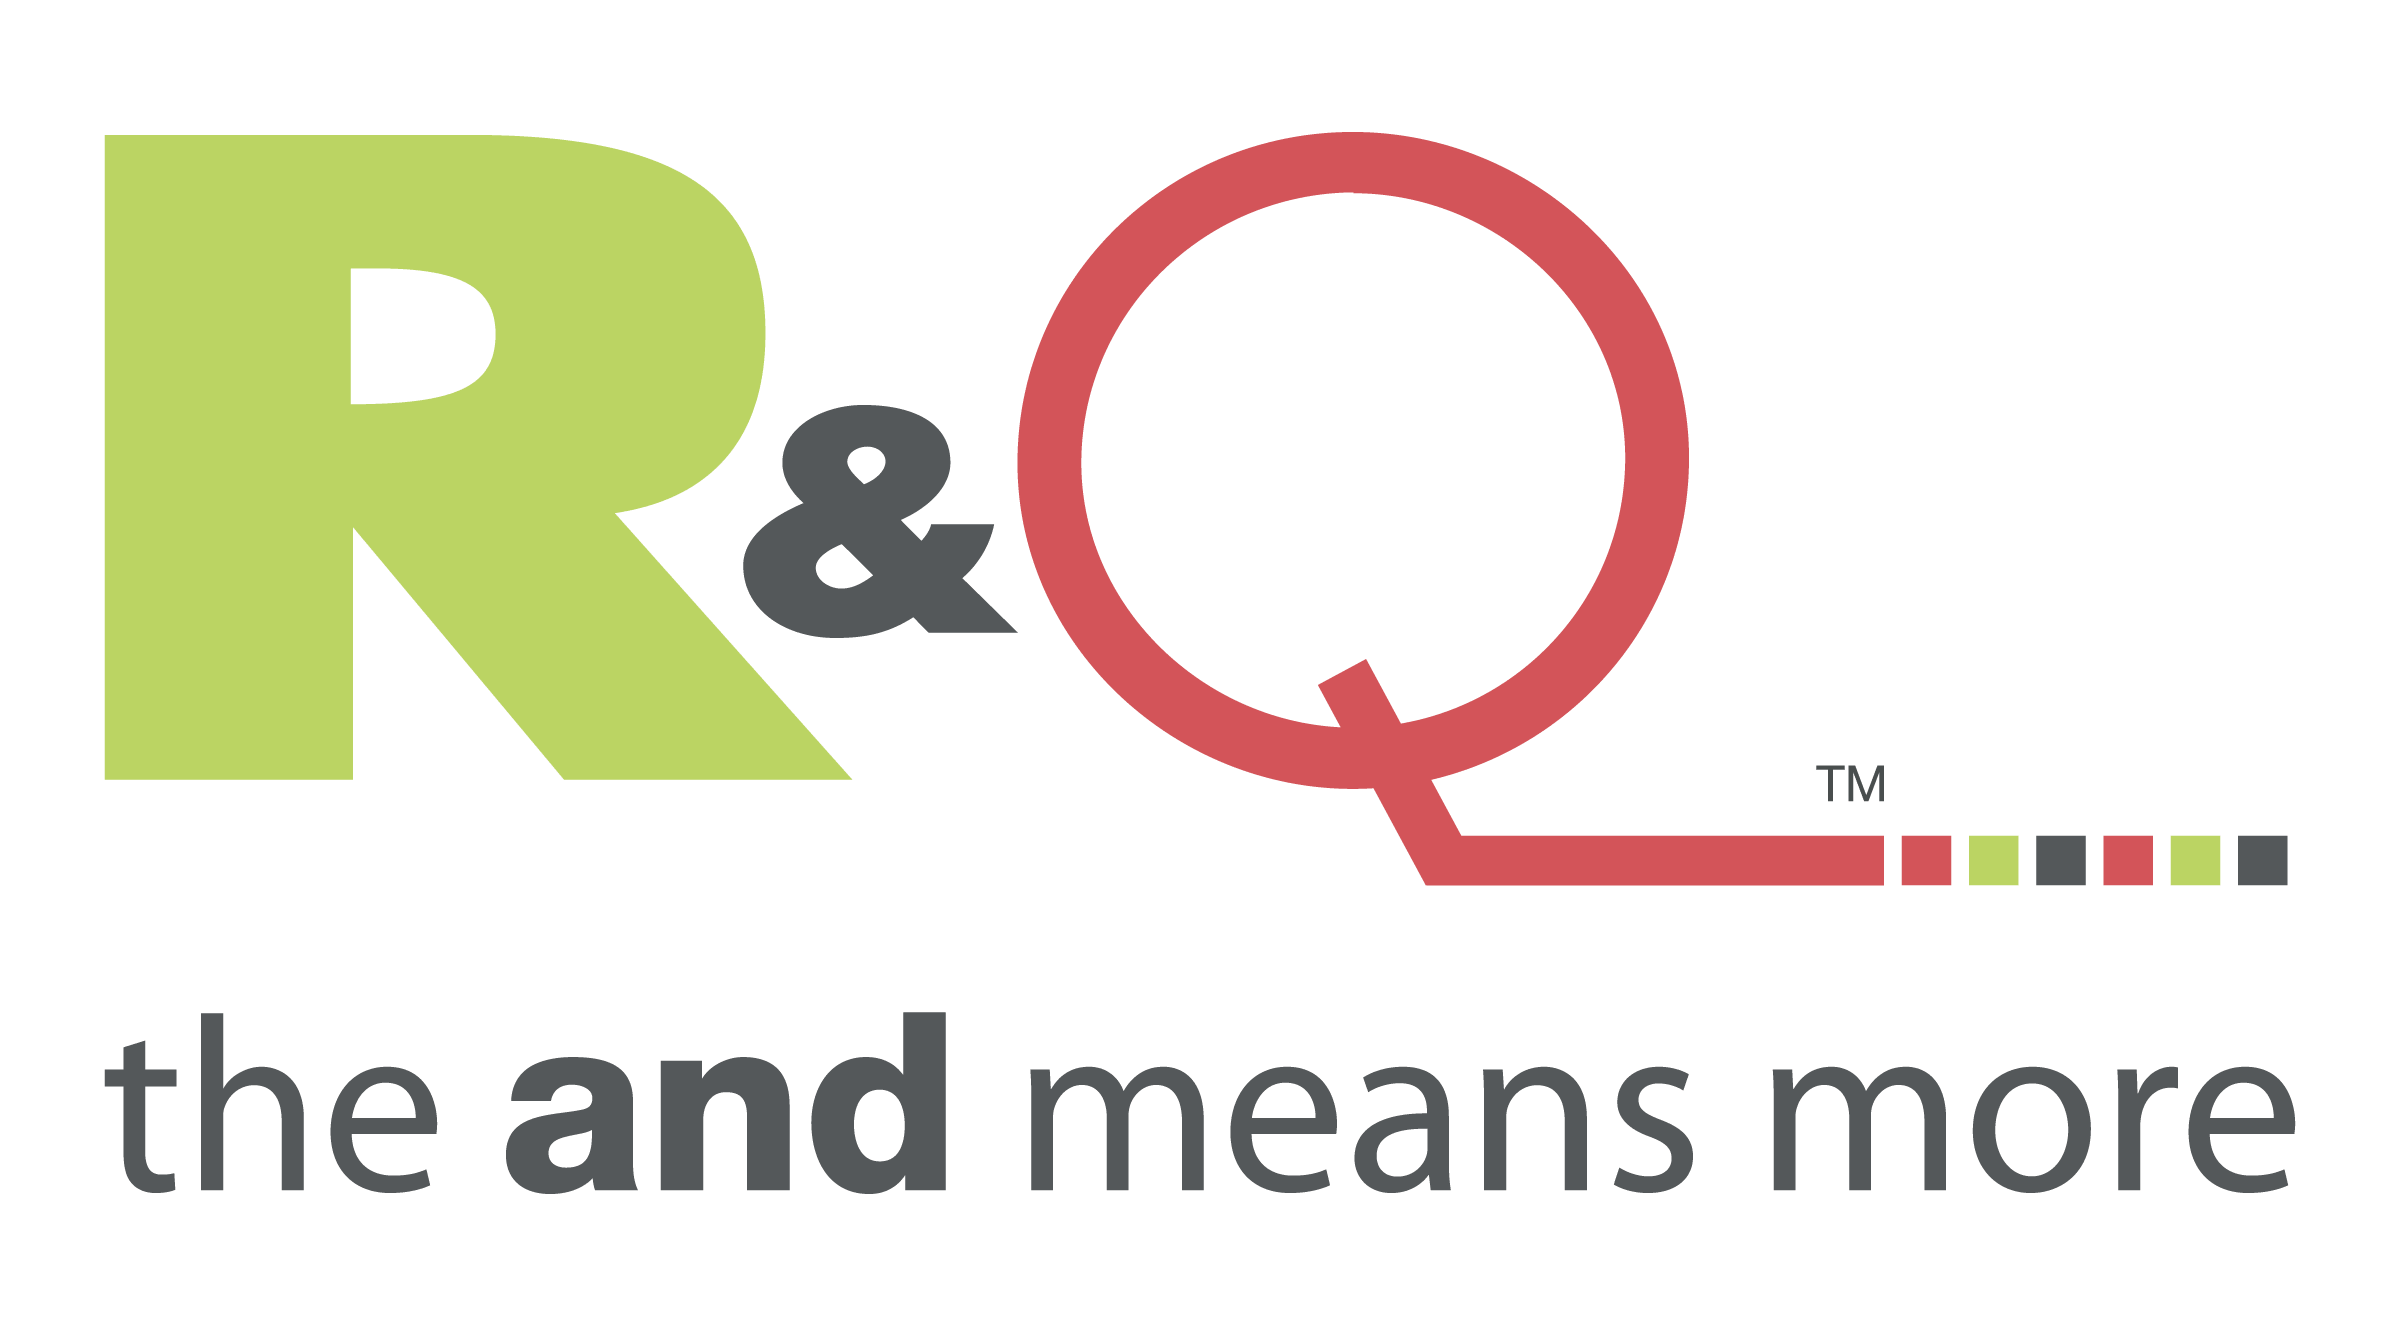 R&Q logo — The and means more